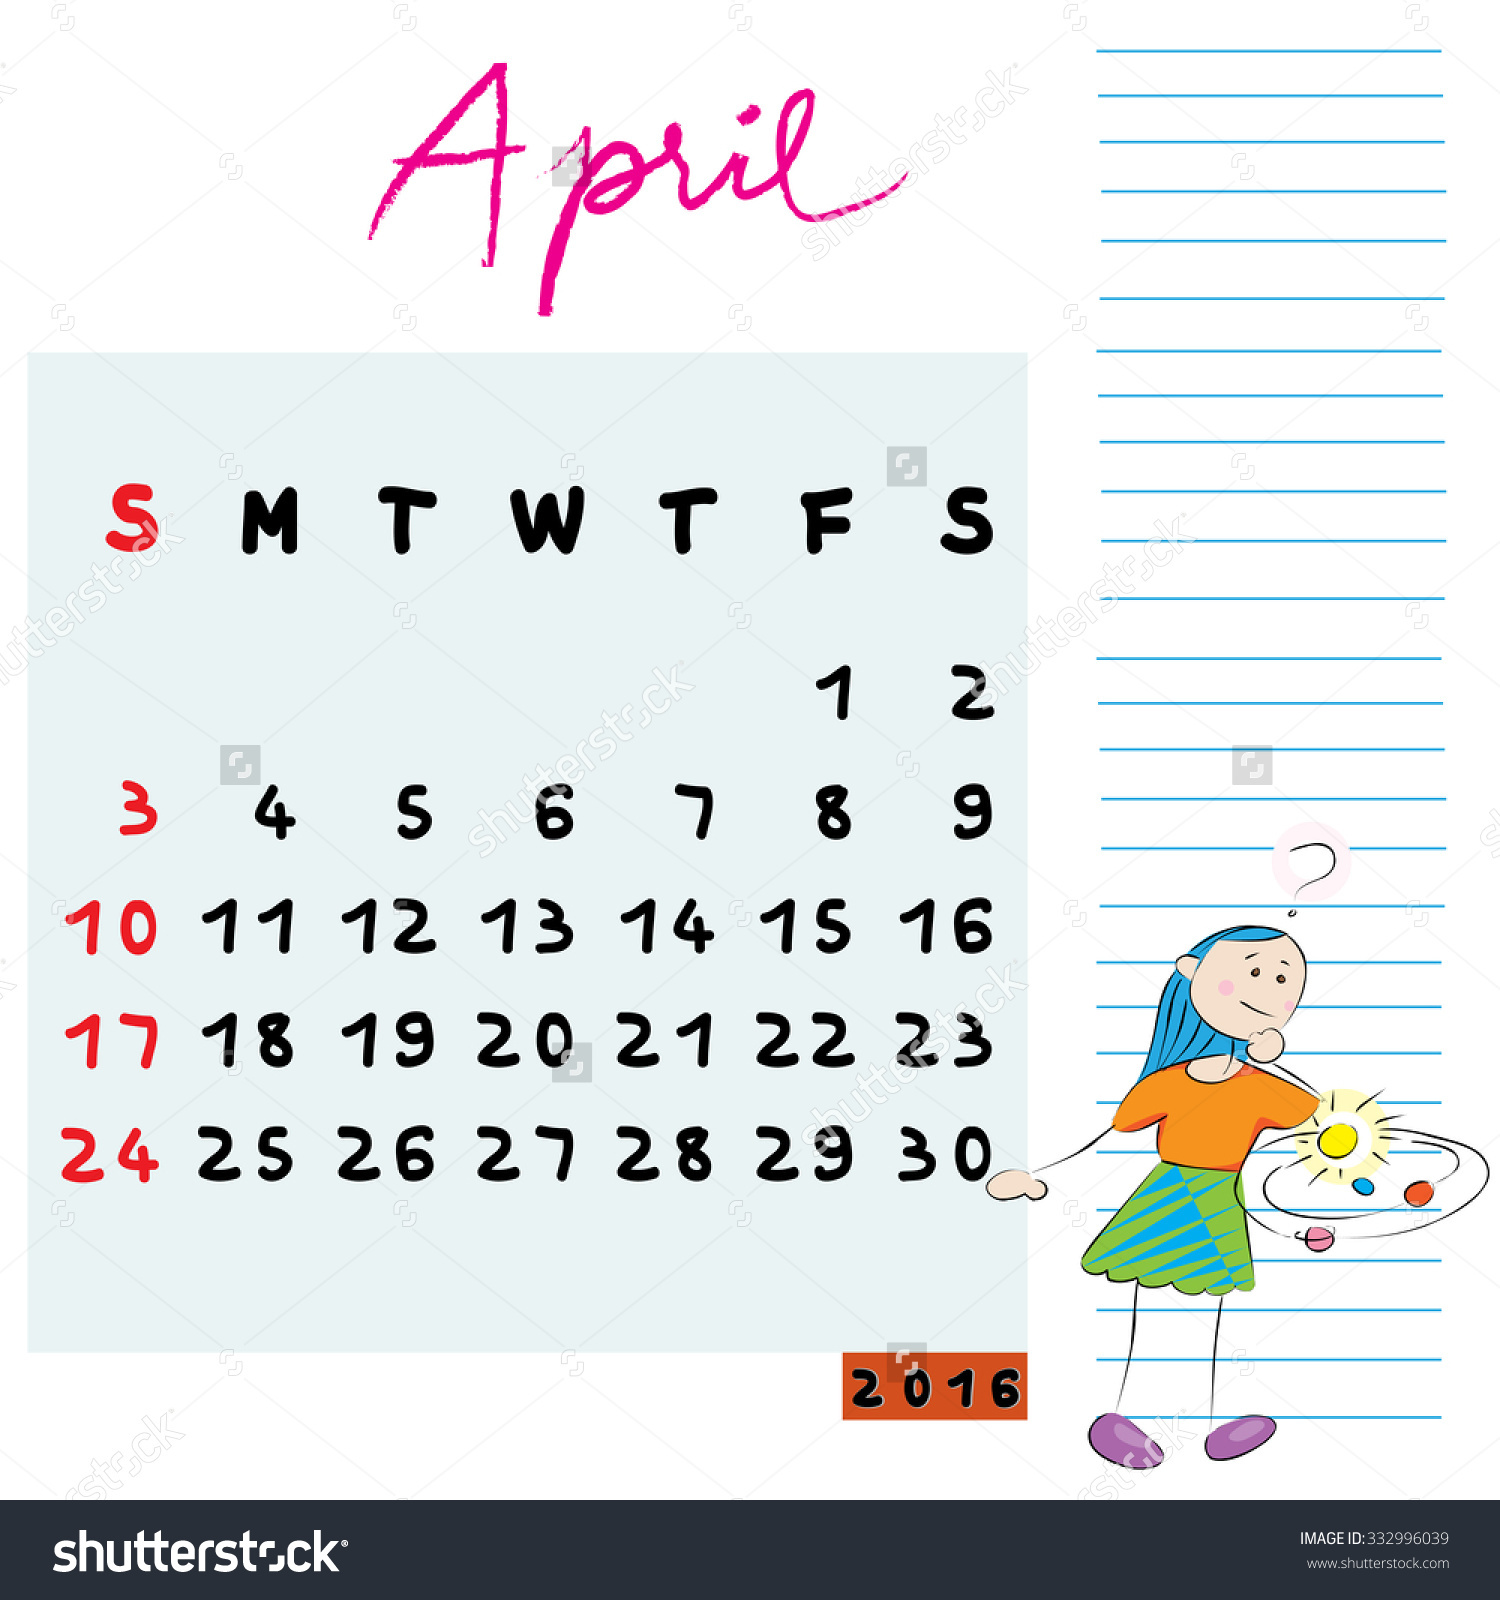 April 2016 calendar clipart clip free stock Calendar Design For April 2016, With The Inquirer Student Profile ... clip free stock